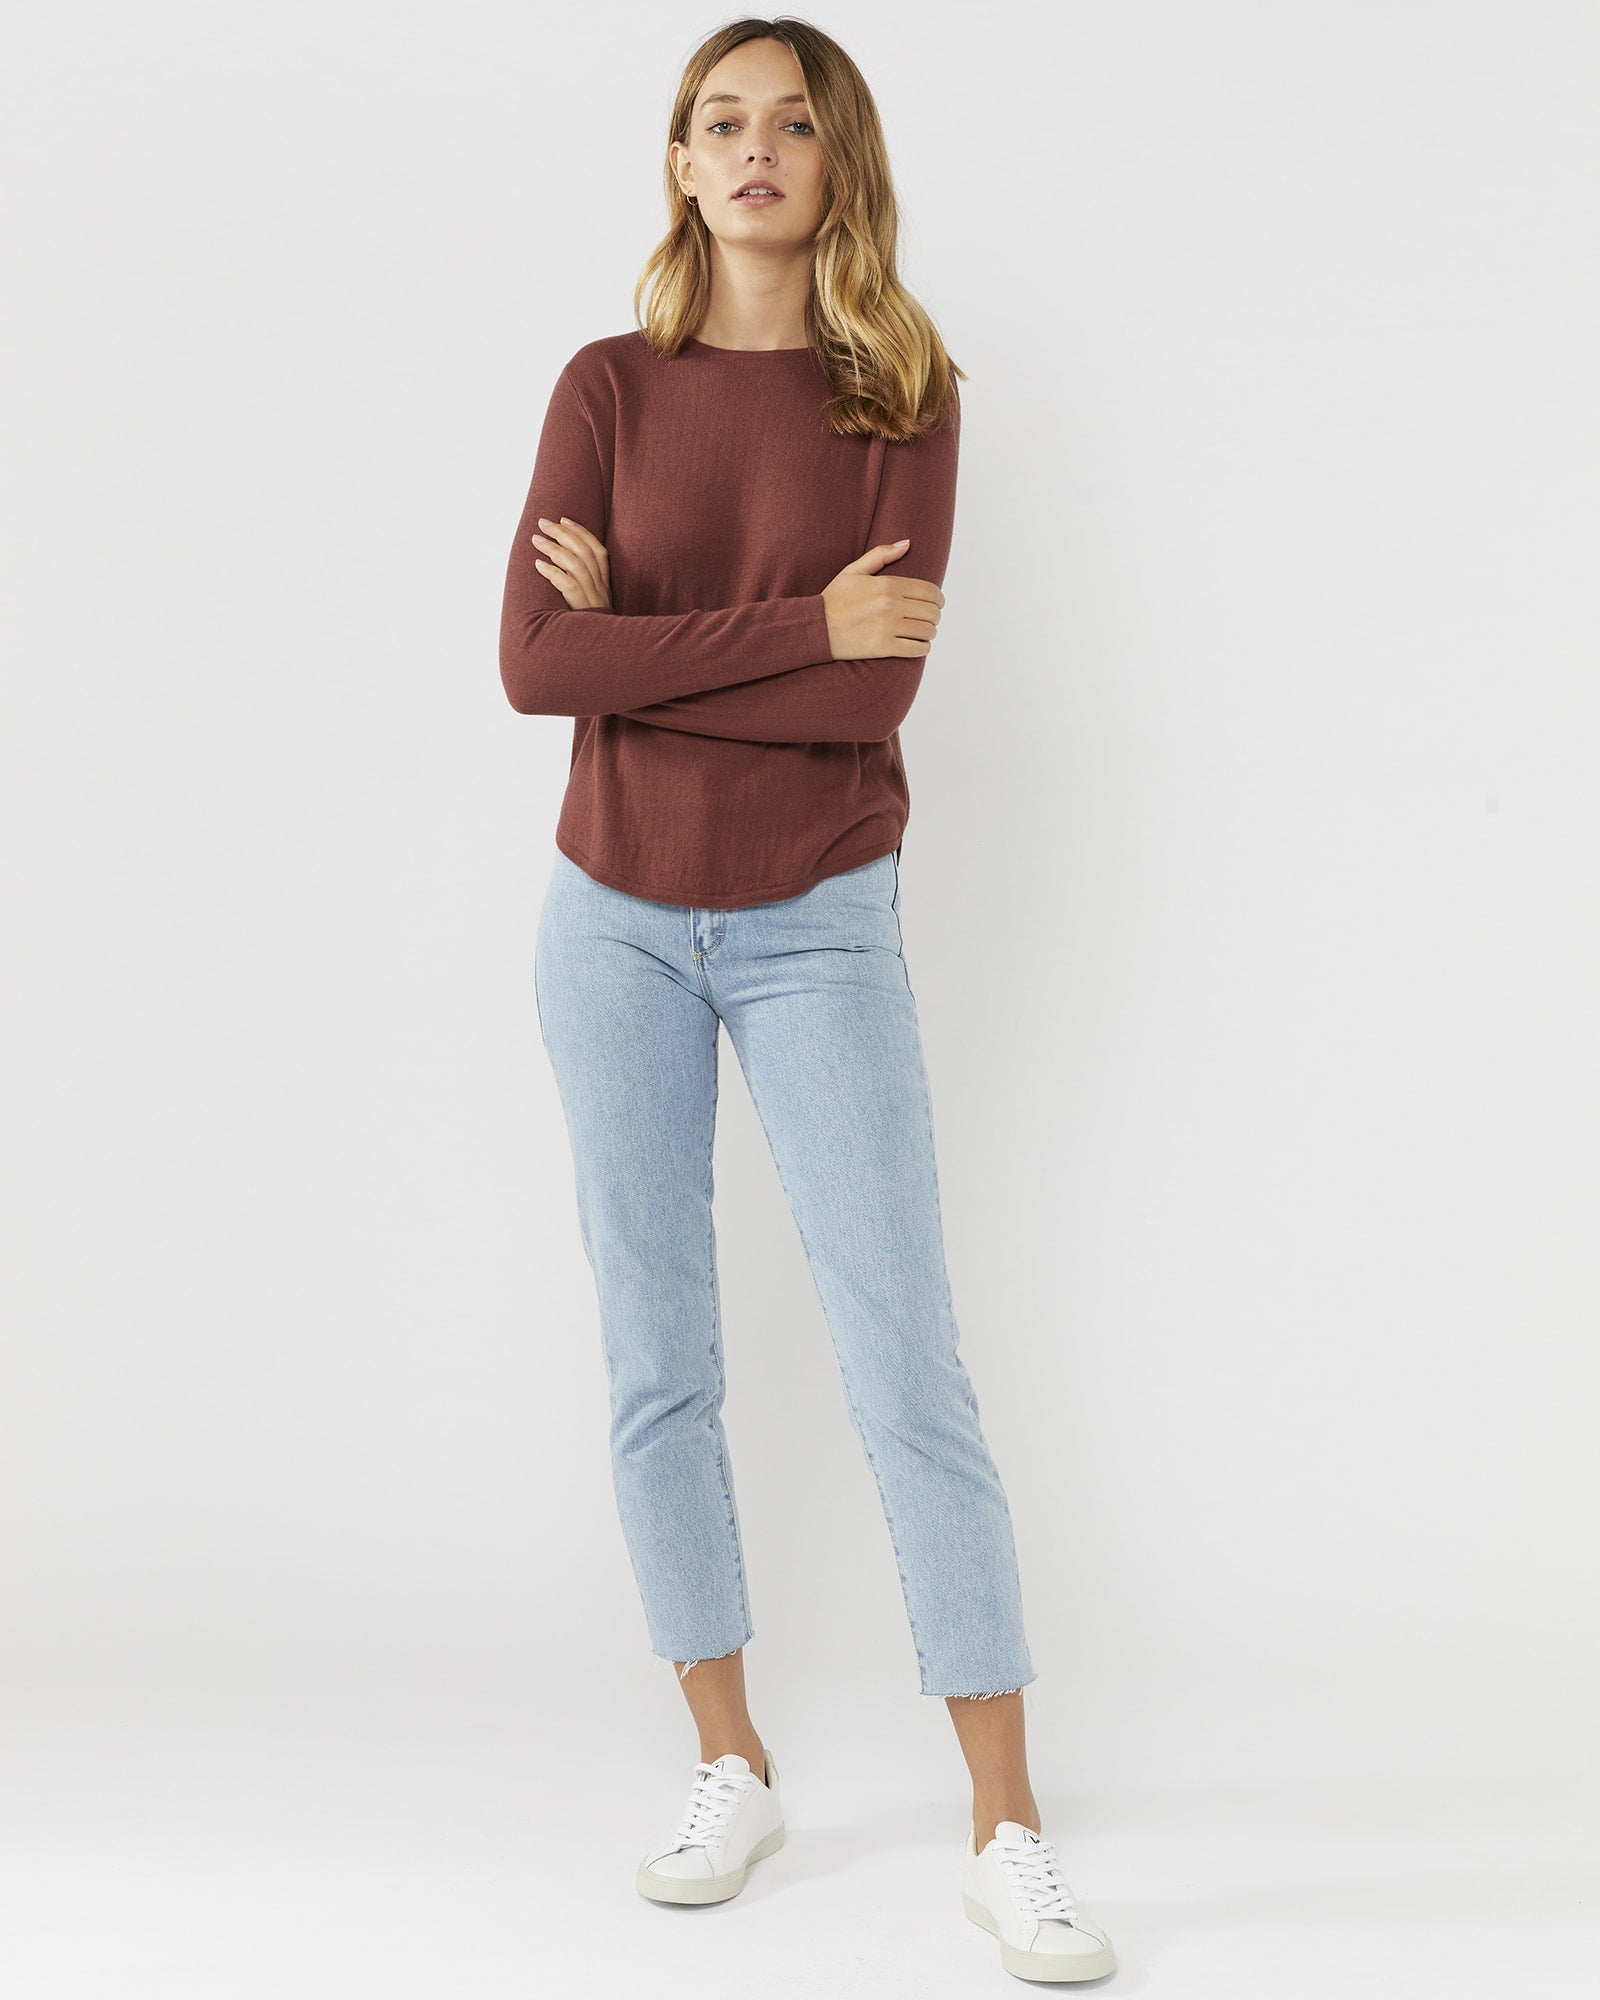 THIS WAY JUMPER - MARSALA